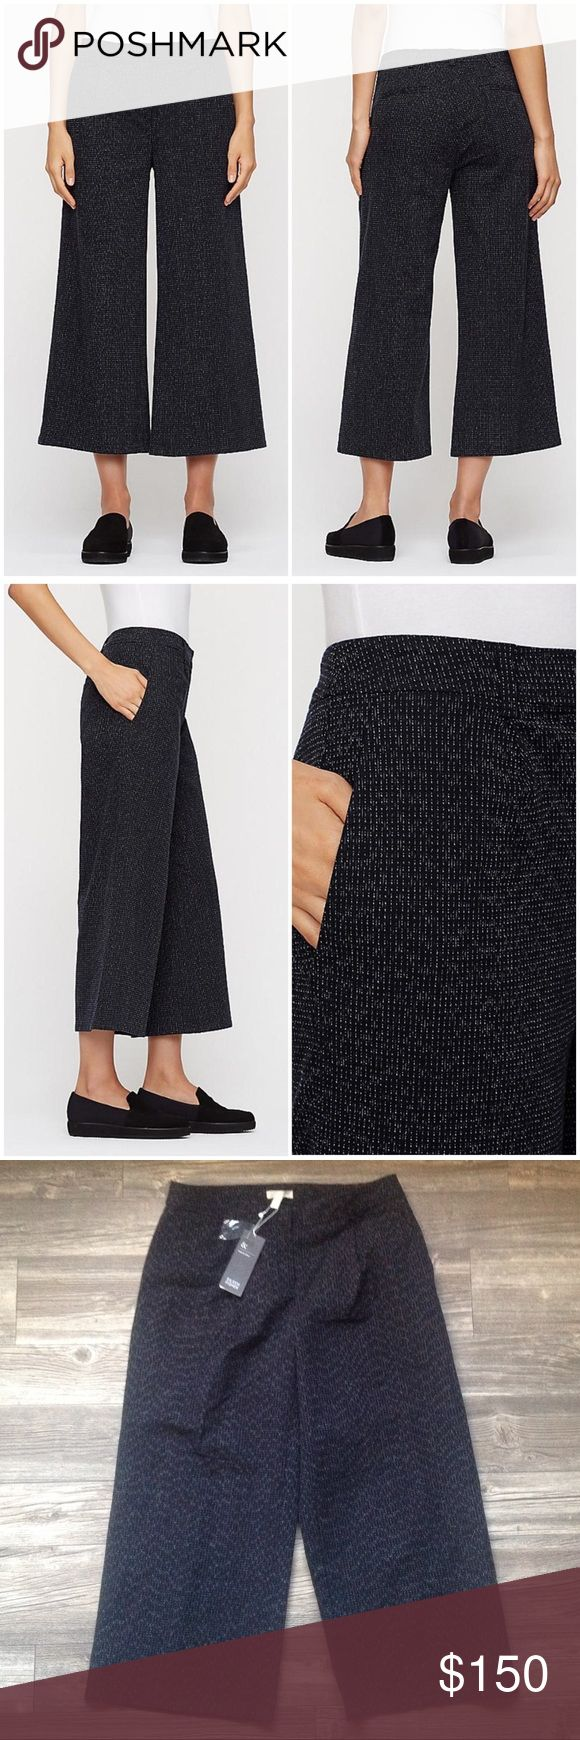 """Eileen Fisher Wide Cropped Pant """"Softly structured, in an artful weave inspired by traditional craft techniques. Smooth through the hips, flared through the leg. Trouser styling with belt loops, angled front pockets and back welt pockets. 1 1/2-inch waistband, front pleats, back darts. Fly front with corozo button and hook and bar closure. 10-inch rise, 24-inch inseam. An organic cotton weave with an intricate rainfall pattern inspired by kasuri, a traditional Japanese dyeing technique.""""…"""